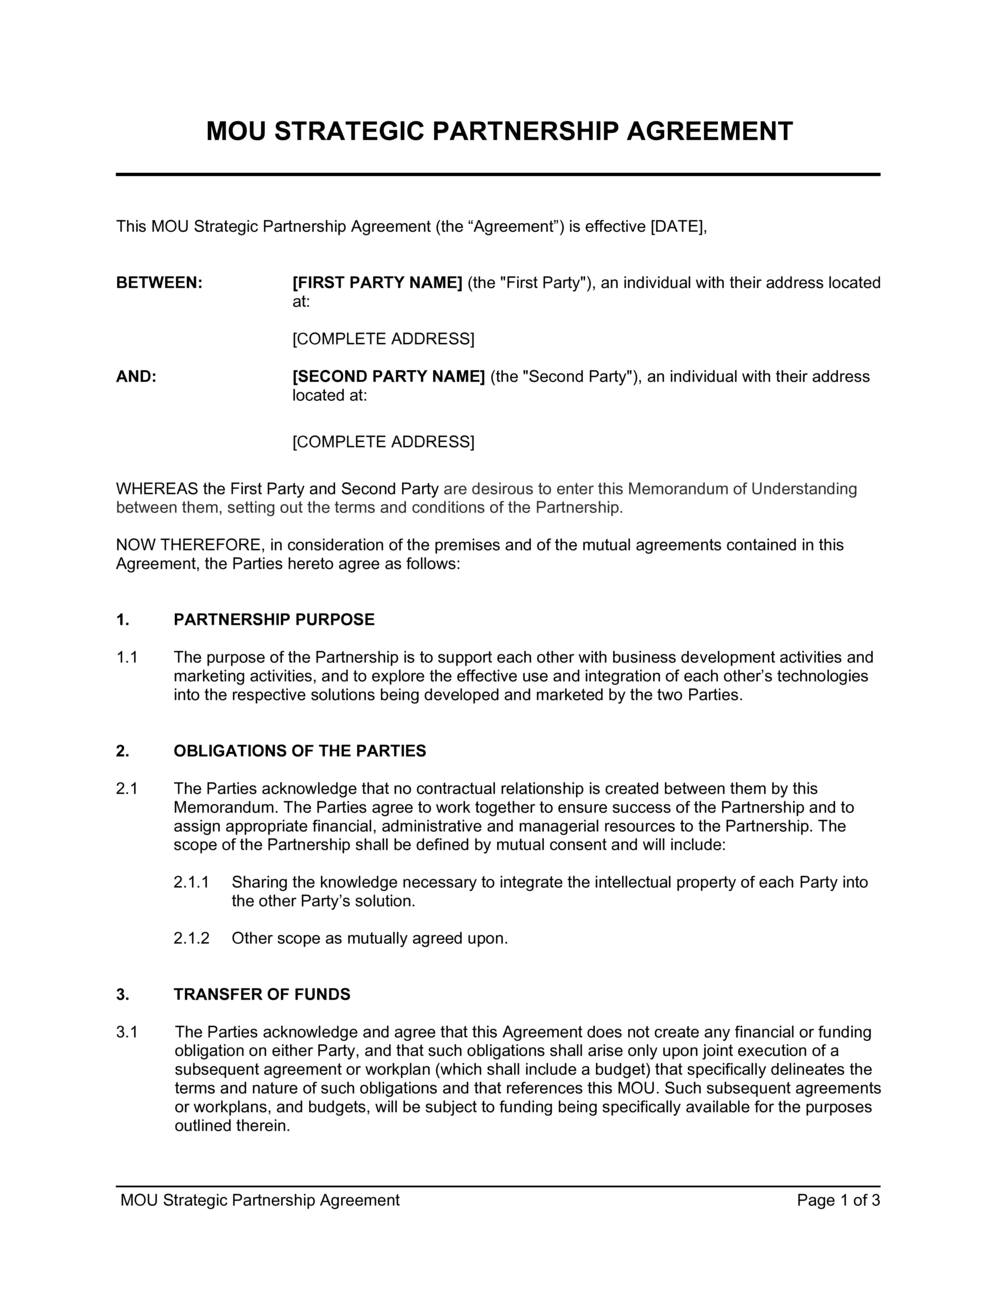 Business-in-a-Box's MOU Strategic Partnership Agreement Template